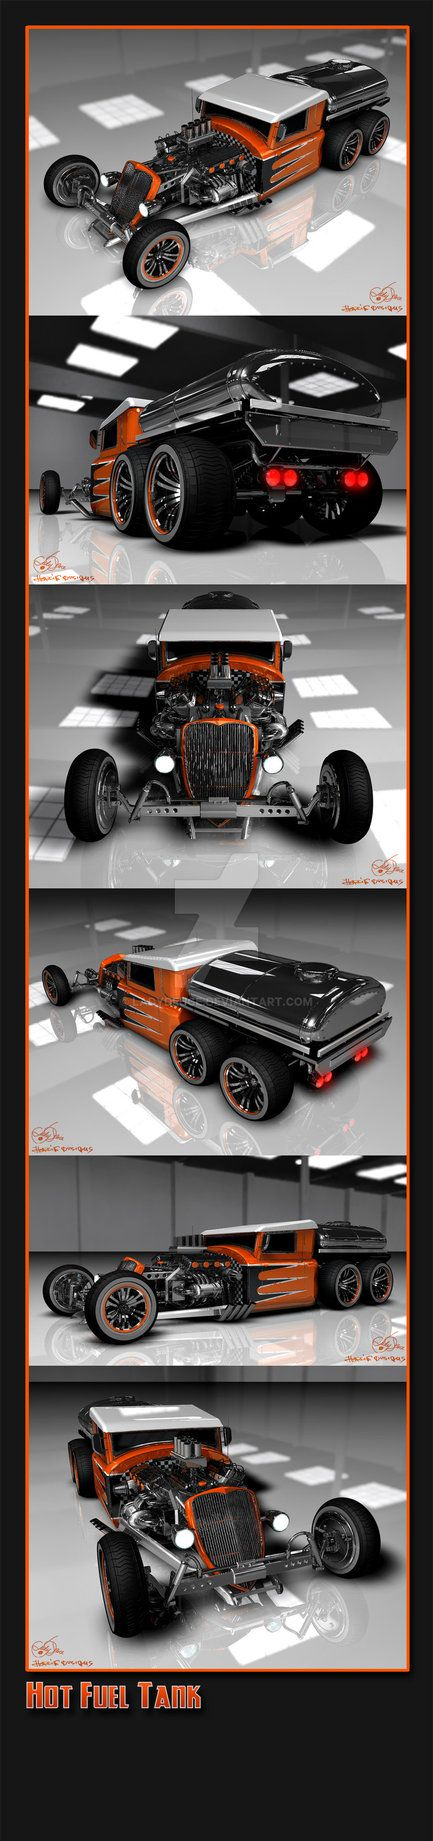 An old customized truck with a fuel tank. Here my template: Thanks Sketcher-from-PVT, that I could use this image!!! Modelled in Rhino, rendered in Cinema 4D. More of this car: